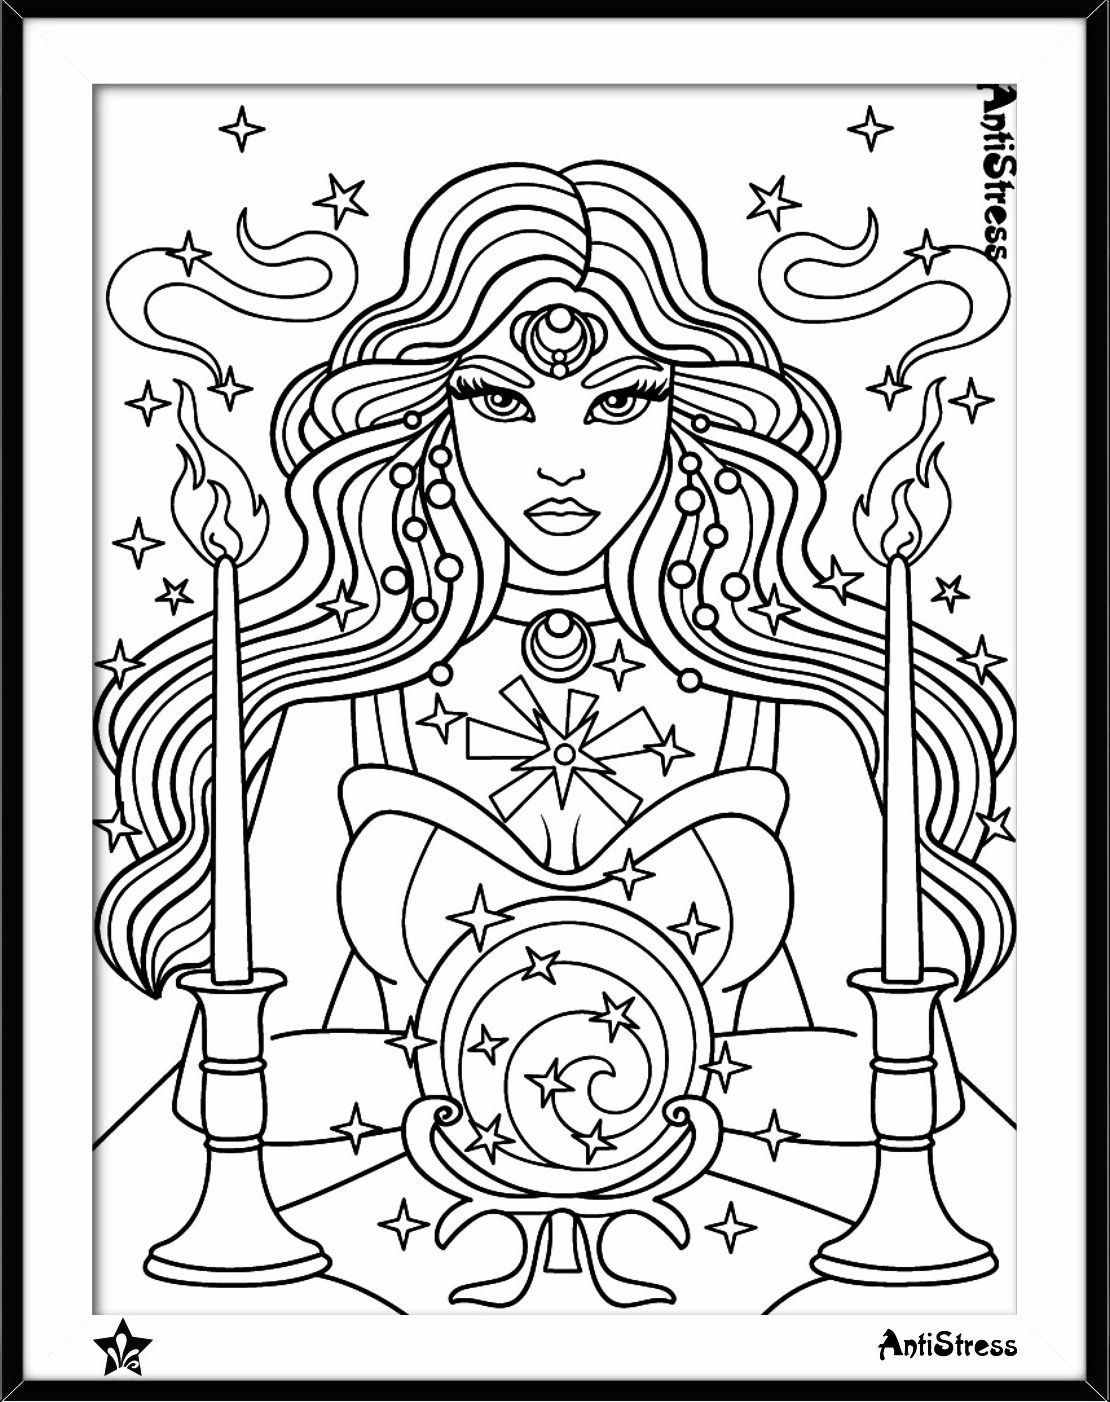 Gypsy coloring page | Stress Illustration Drawings | Pinterest ...